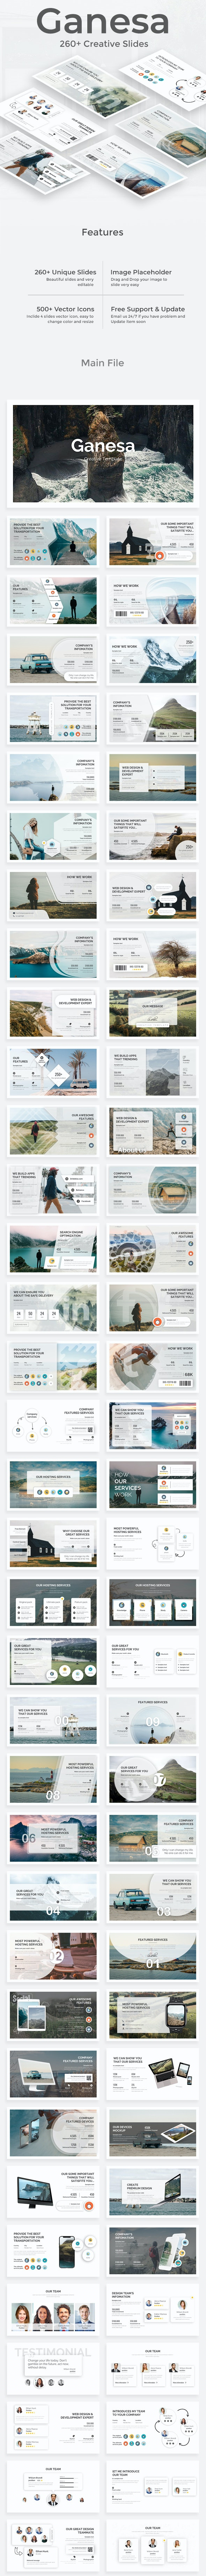 Ganesa Premium Google Slide Template - Google Slides Presentation Templates